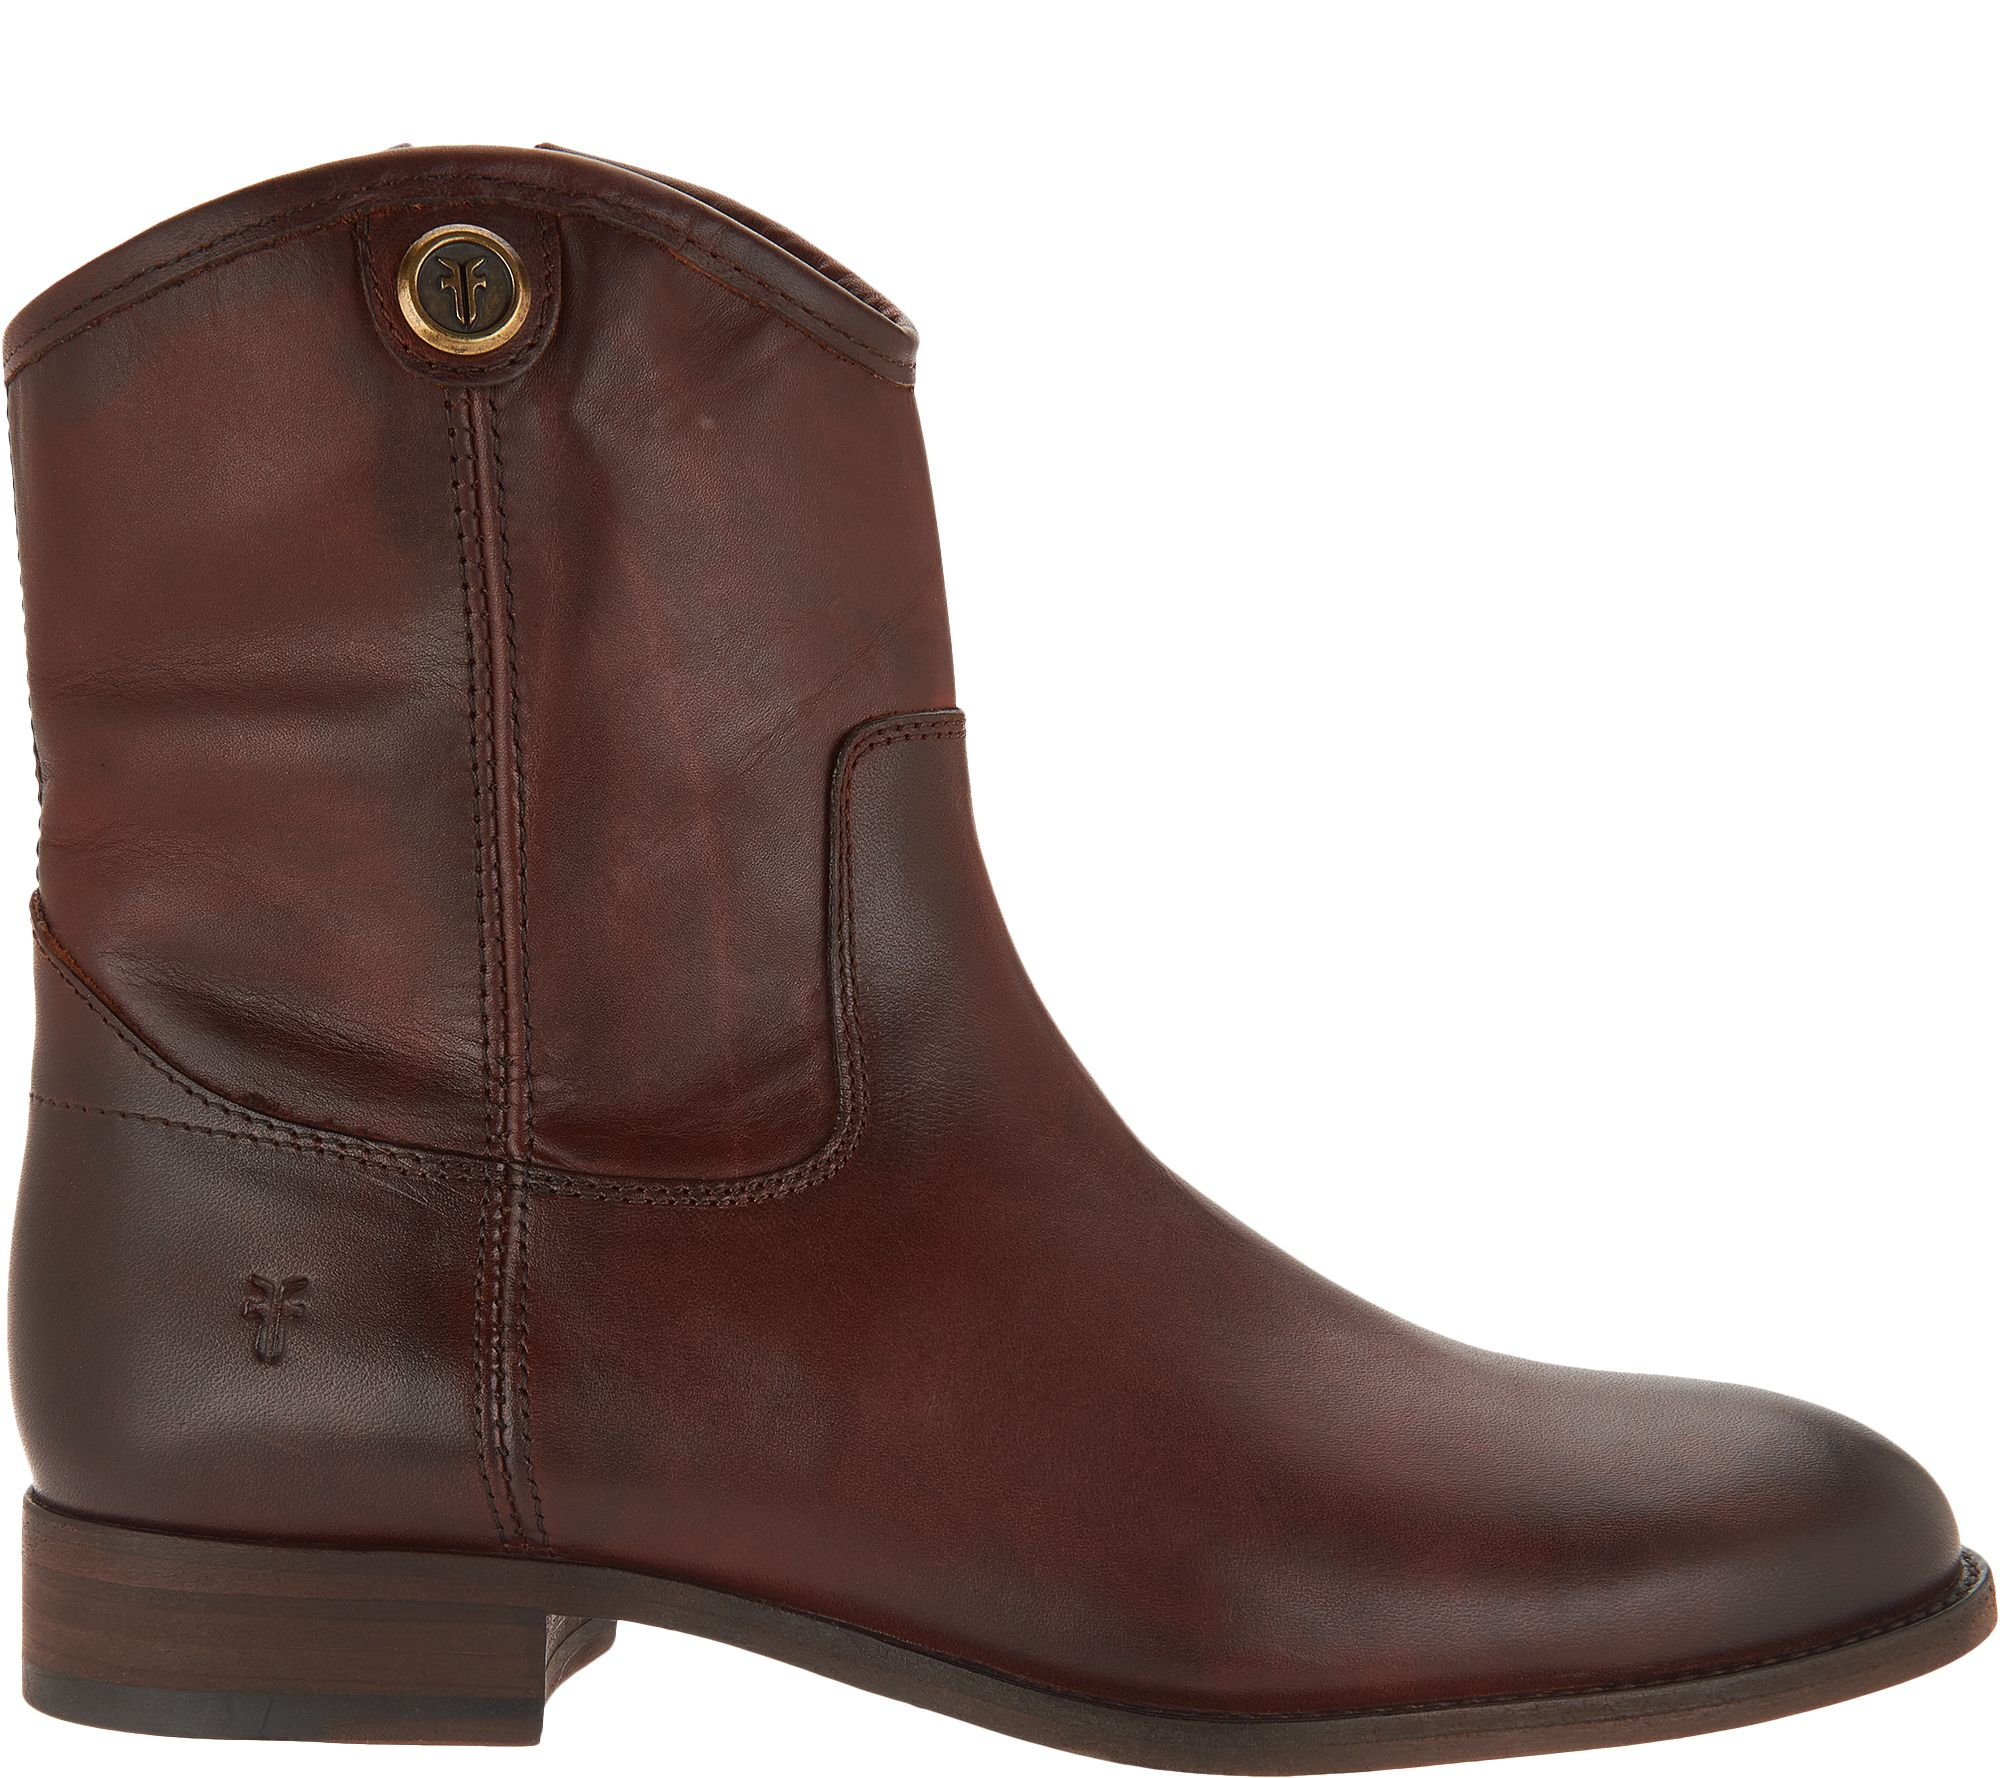 4eeef58b836 Frye Leather Side Zip Ankle Boots - Melissa Button Short 2 - Page 1 —  QVC.com